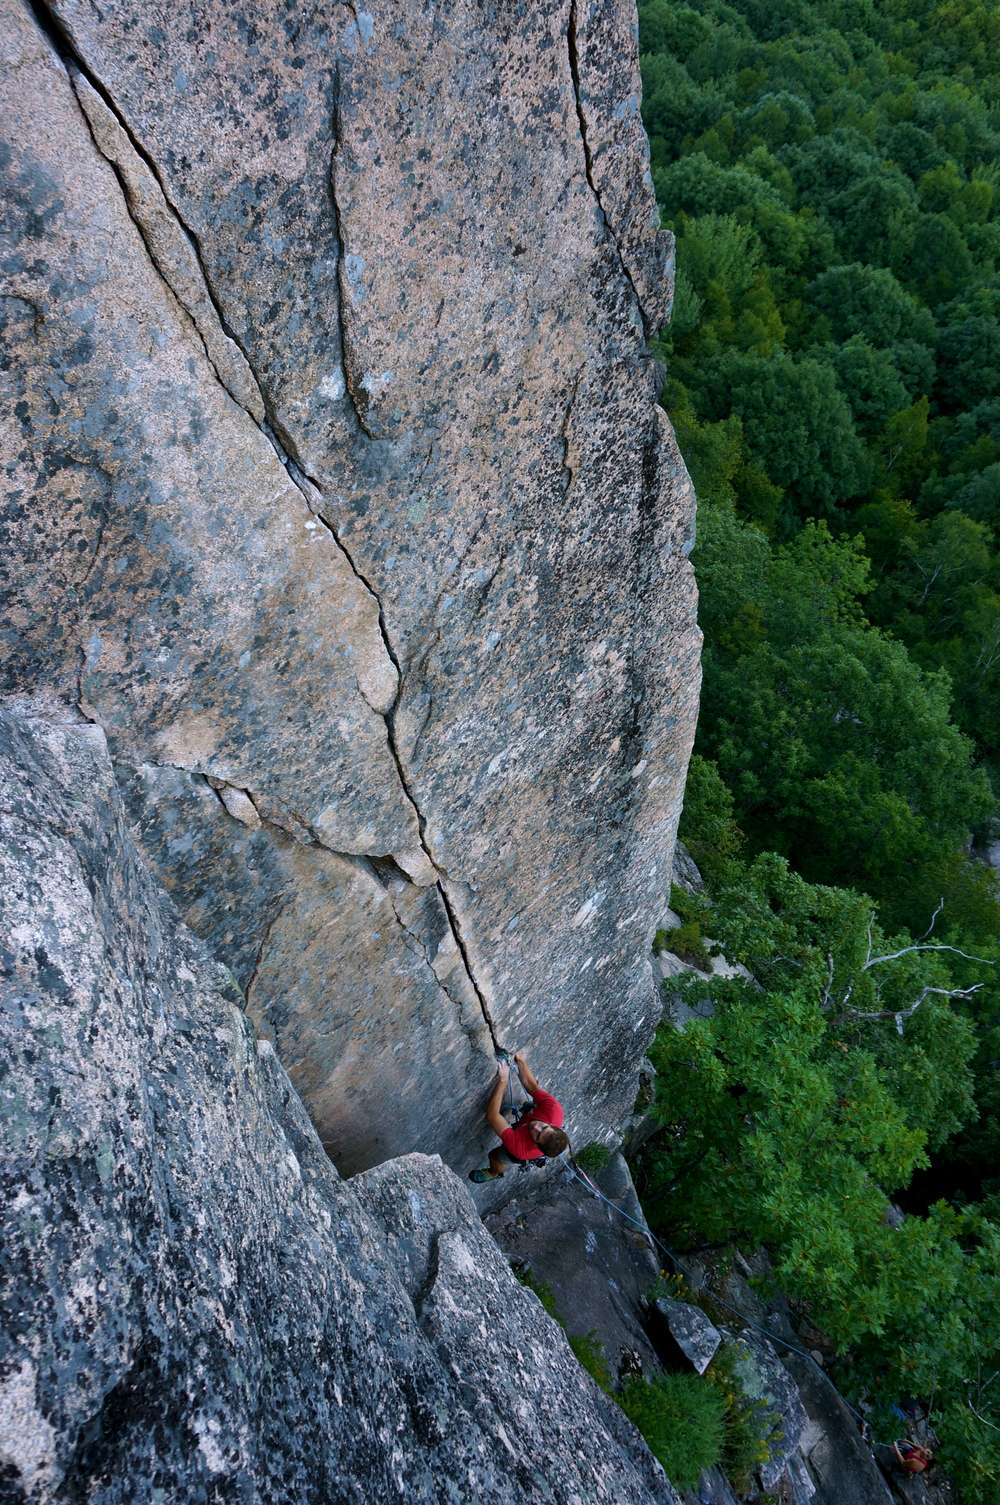 Seth Pettit on Emigrant Crack (5.10b).